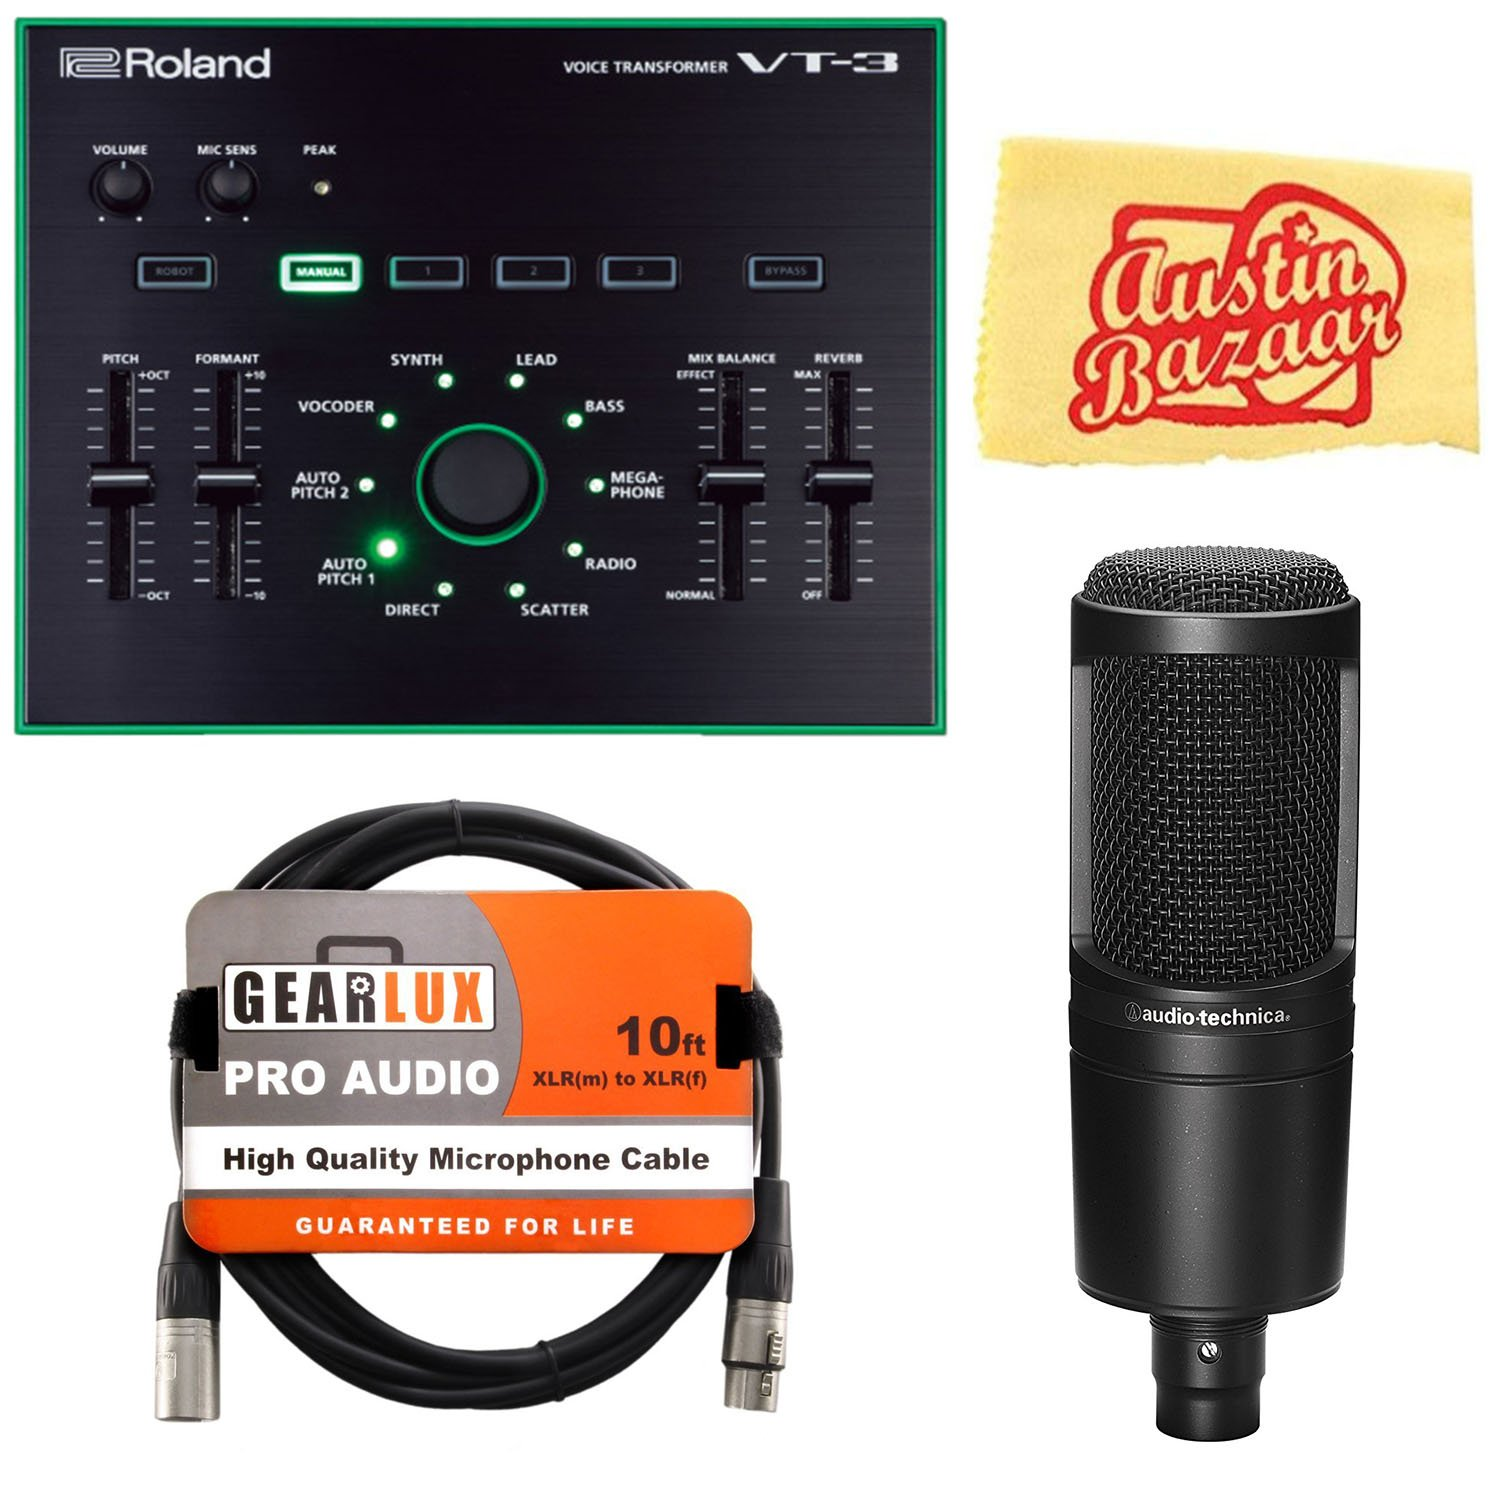 Roland VT-3 Voice Transformer Bundle with Audio Technica AT-2020 Cardioid Condenser Microphone, XLR Cable, and Austin Bazaar Polishing Cloth VT-3-COMBO-PRO-1